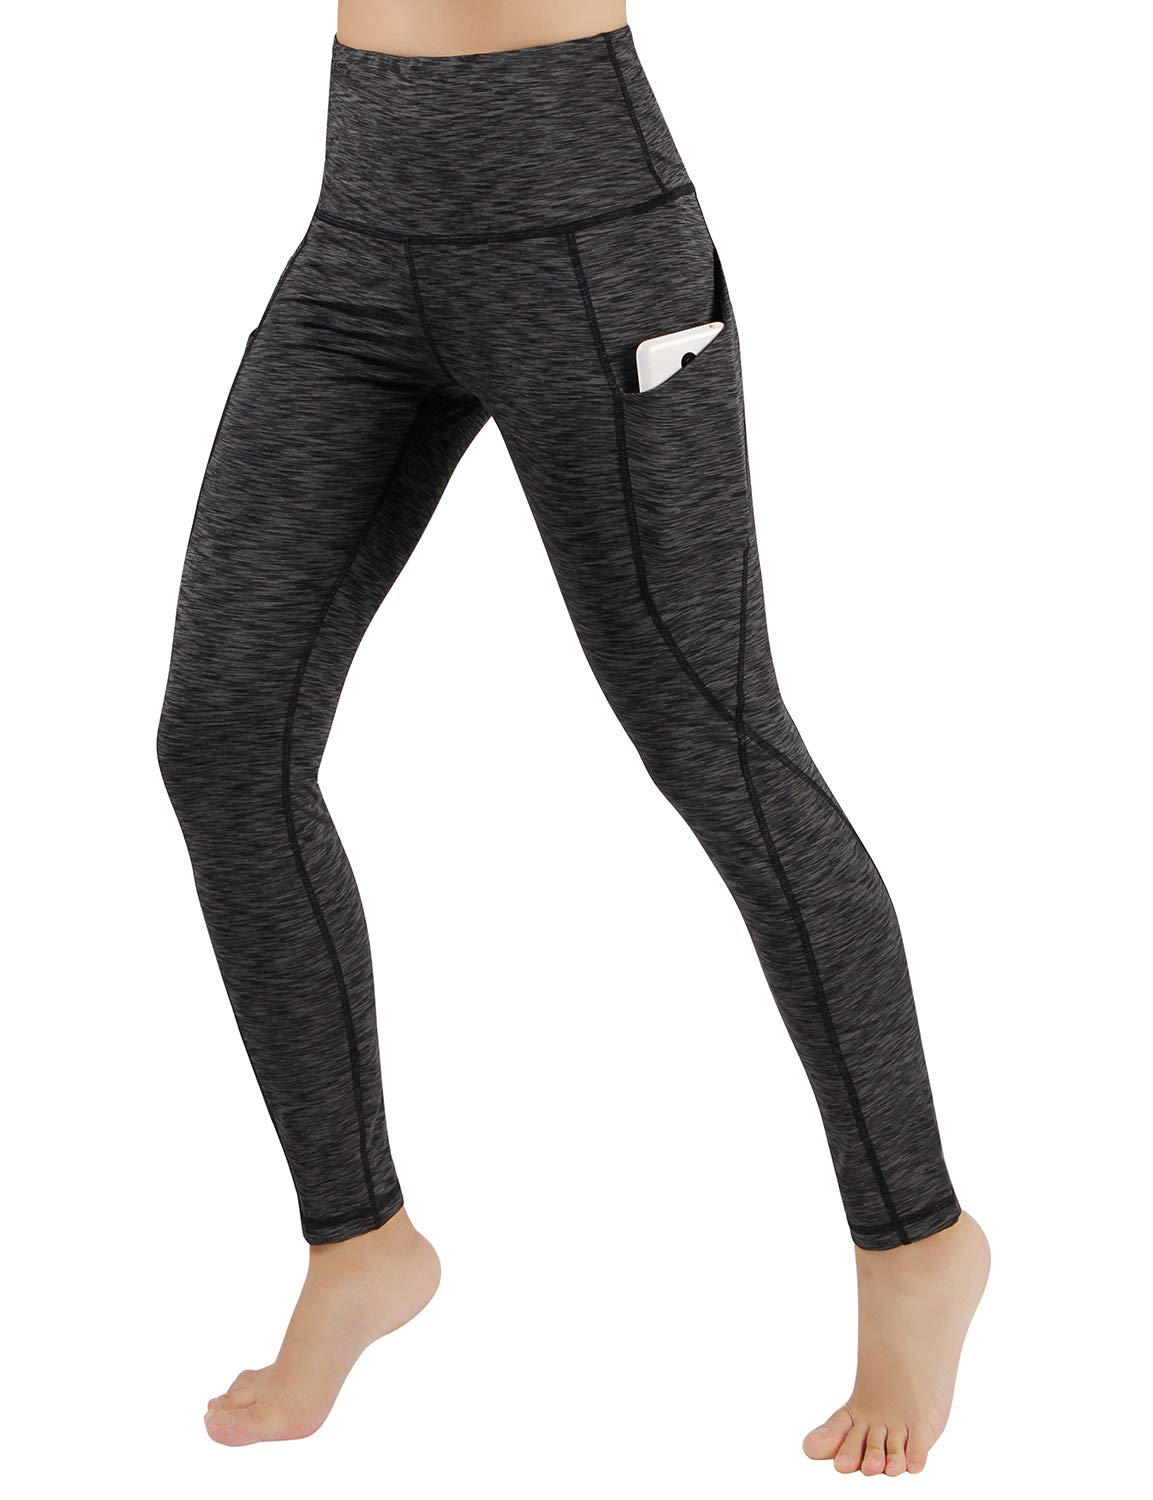 ODODOS High Waist Out Pocket Yoga Pants Tummy Control Workout Running 4 Way Stretch Yoga Leggings,SpaceDyeCharcoal,X-Small